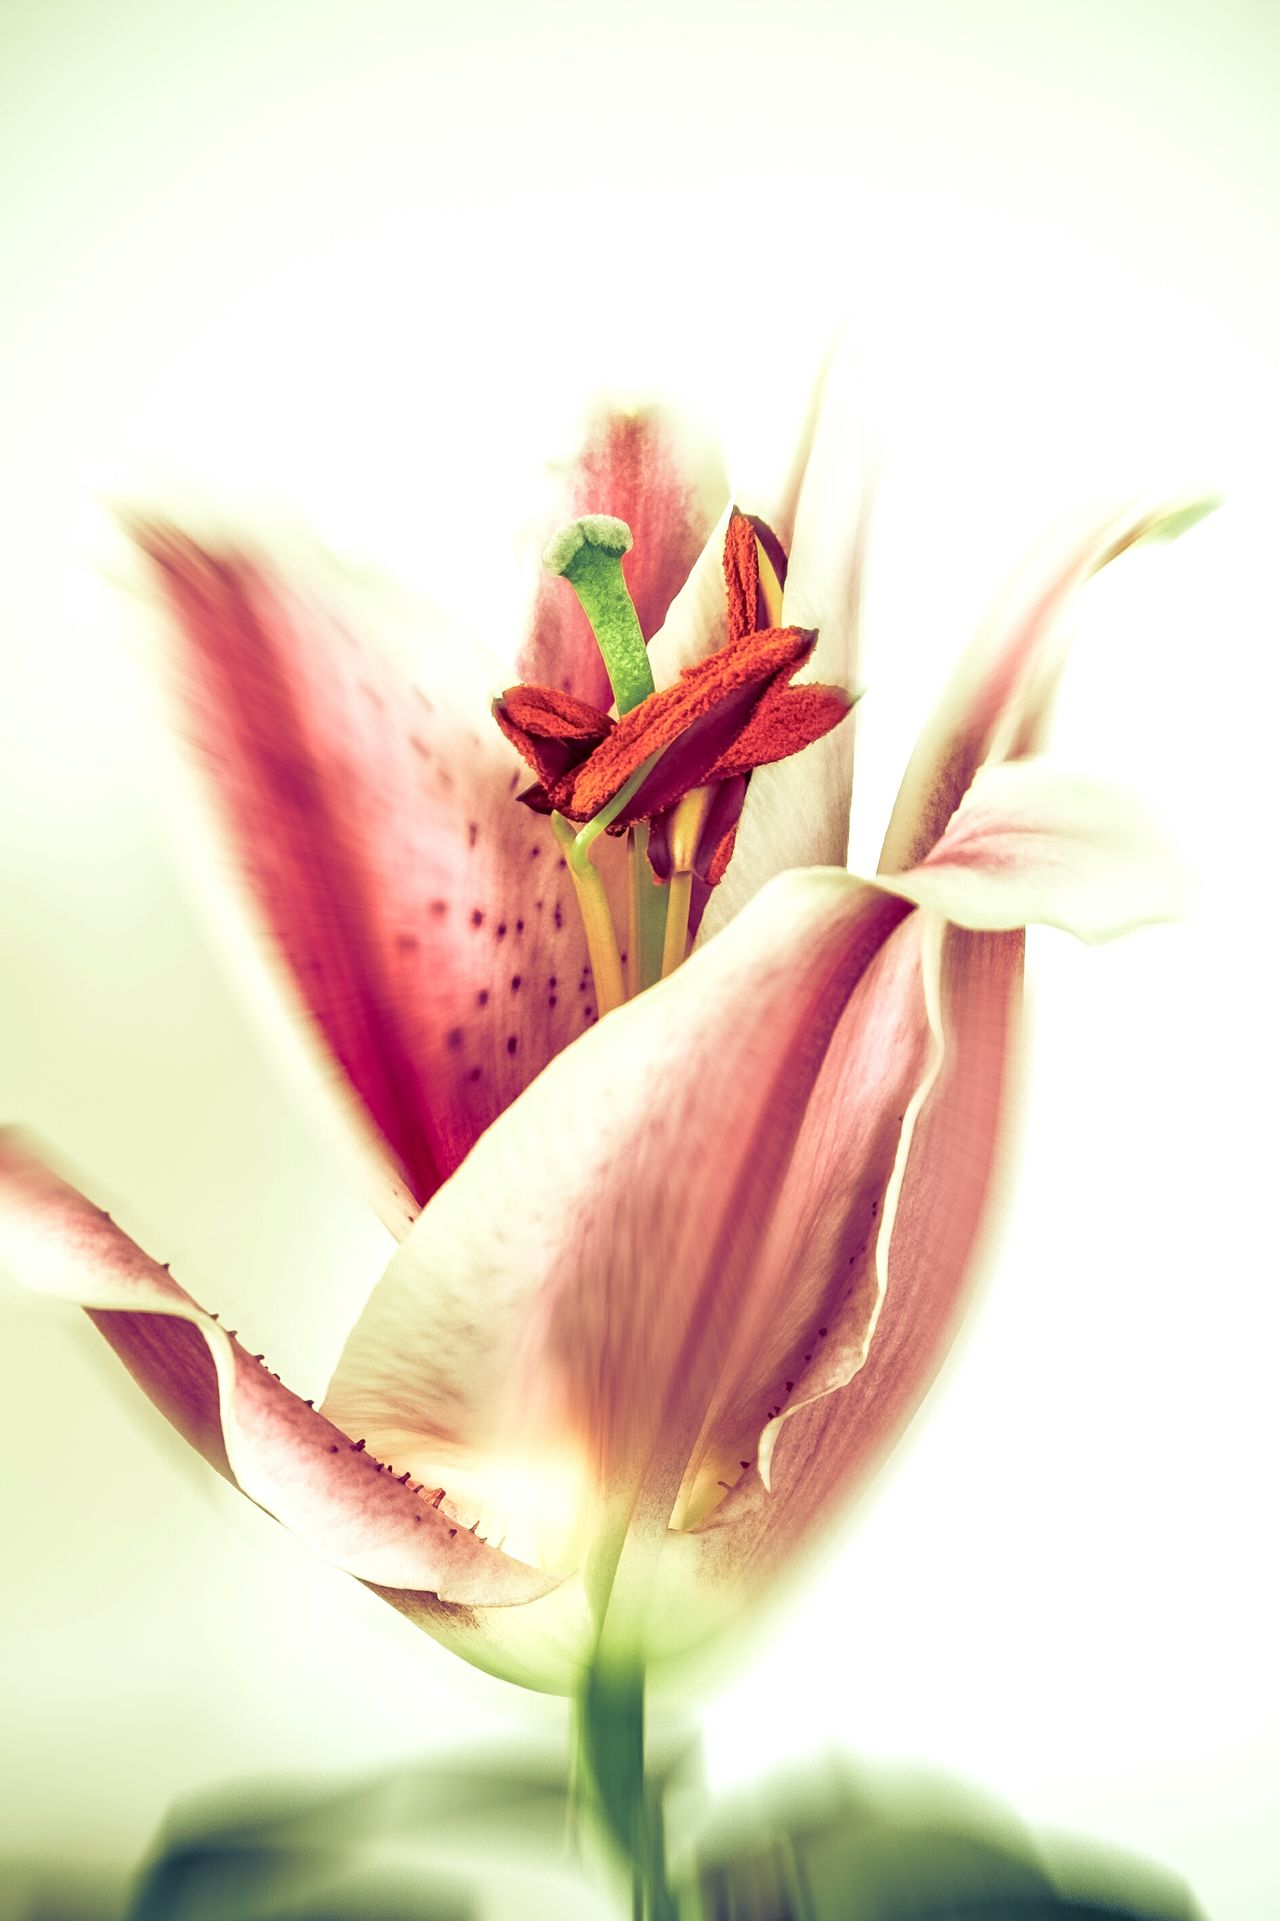 Lily3 Flower Plant Nature Beauty In Nature Close-up Flower Head Growth Freshness Fragility No People EyeEmNewHere Pink Flowers Pink Lily Pink Pink Flower Lilies Lily Fine Art Fine Art Photography Petal Nature Plant Growth Beauty In Nature Freshness